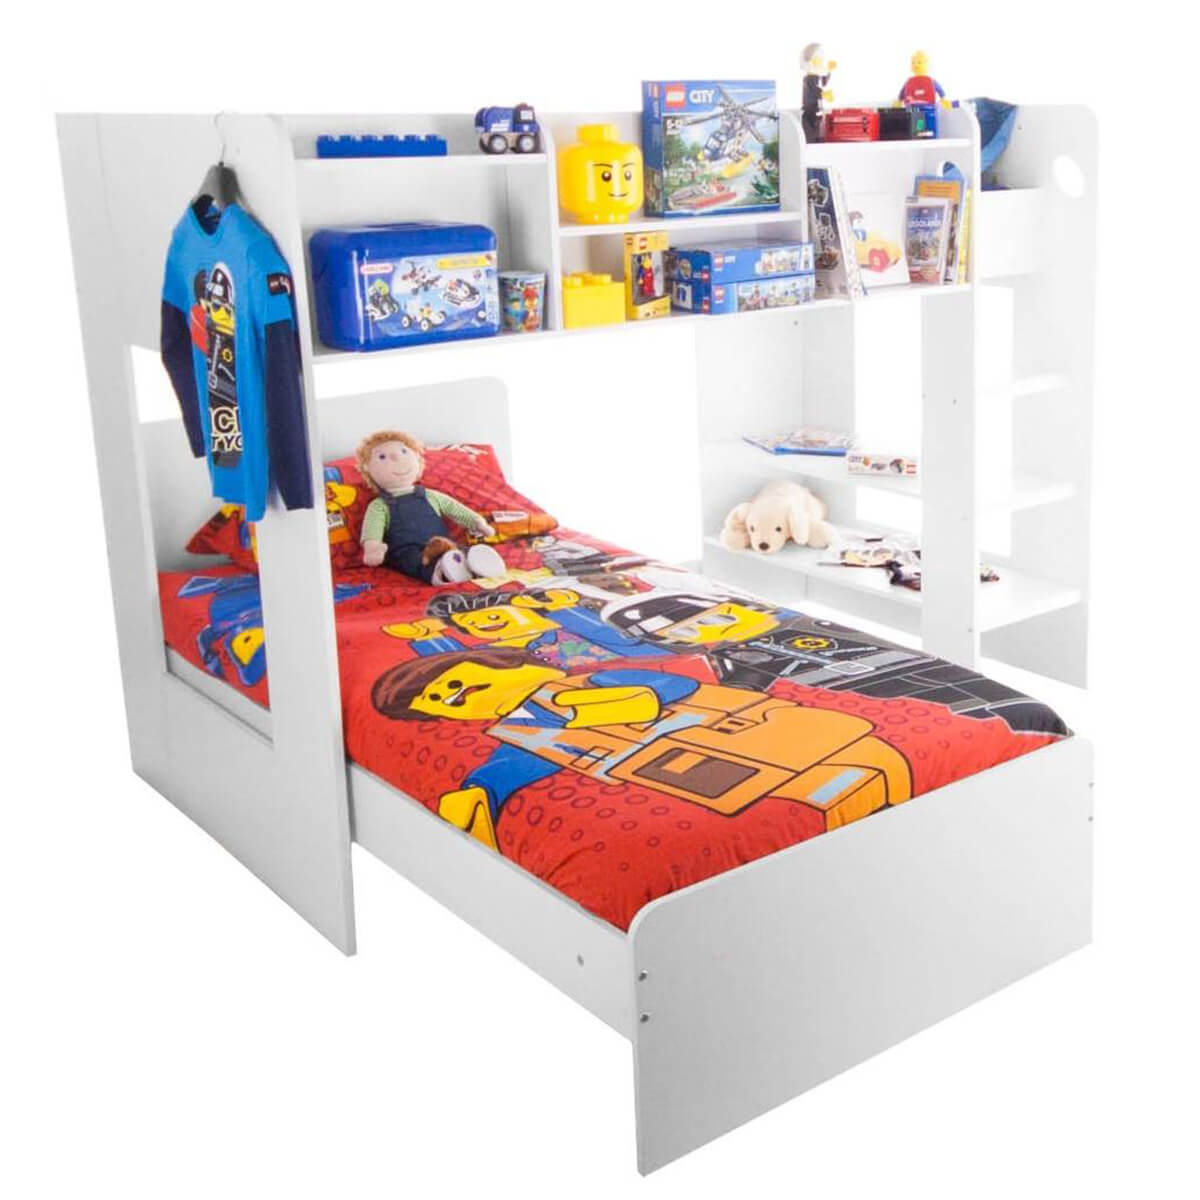 Wizard Bunk Bed With Storage Shelves White